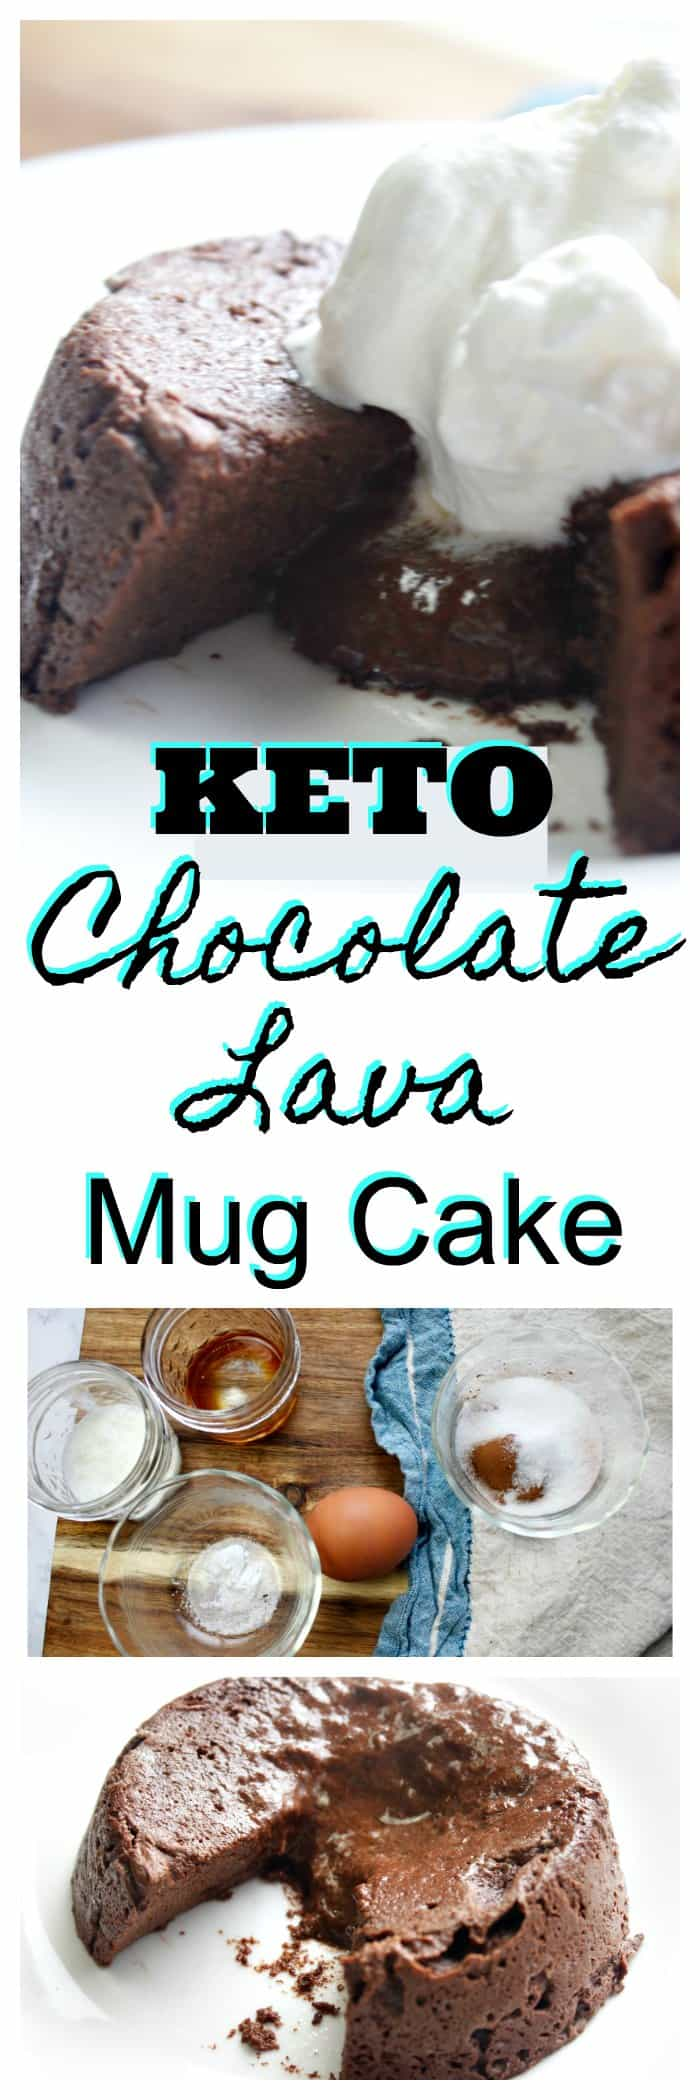 Keto Chocolate Lava Mug Cake Recipe